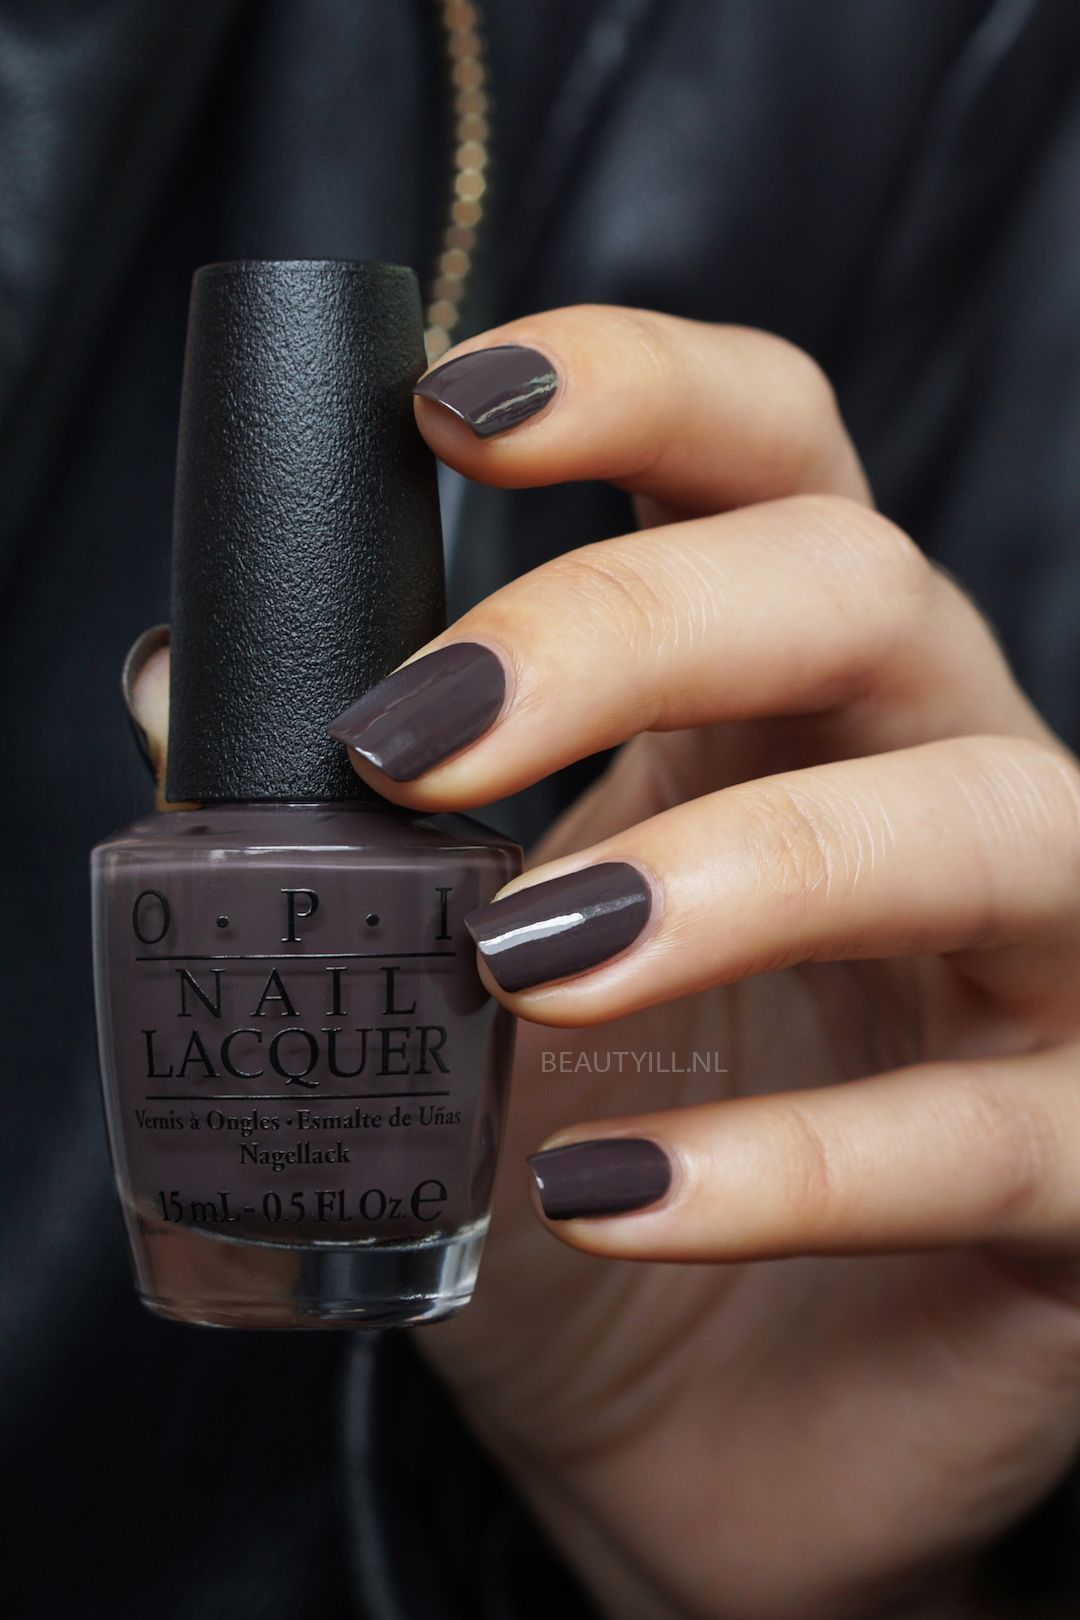 OPI Kronalogical Order  Body nails and hair  Pinterest  OPI